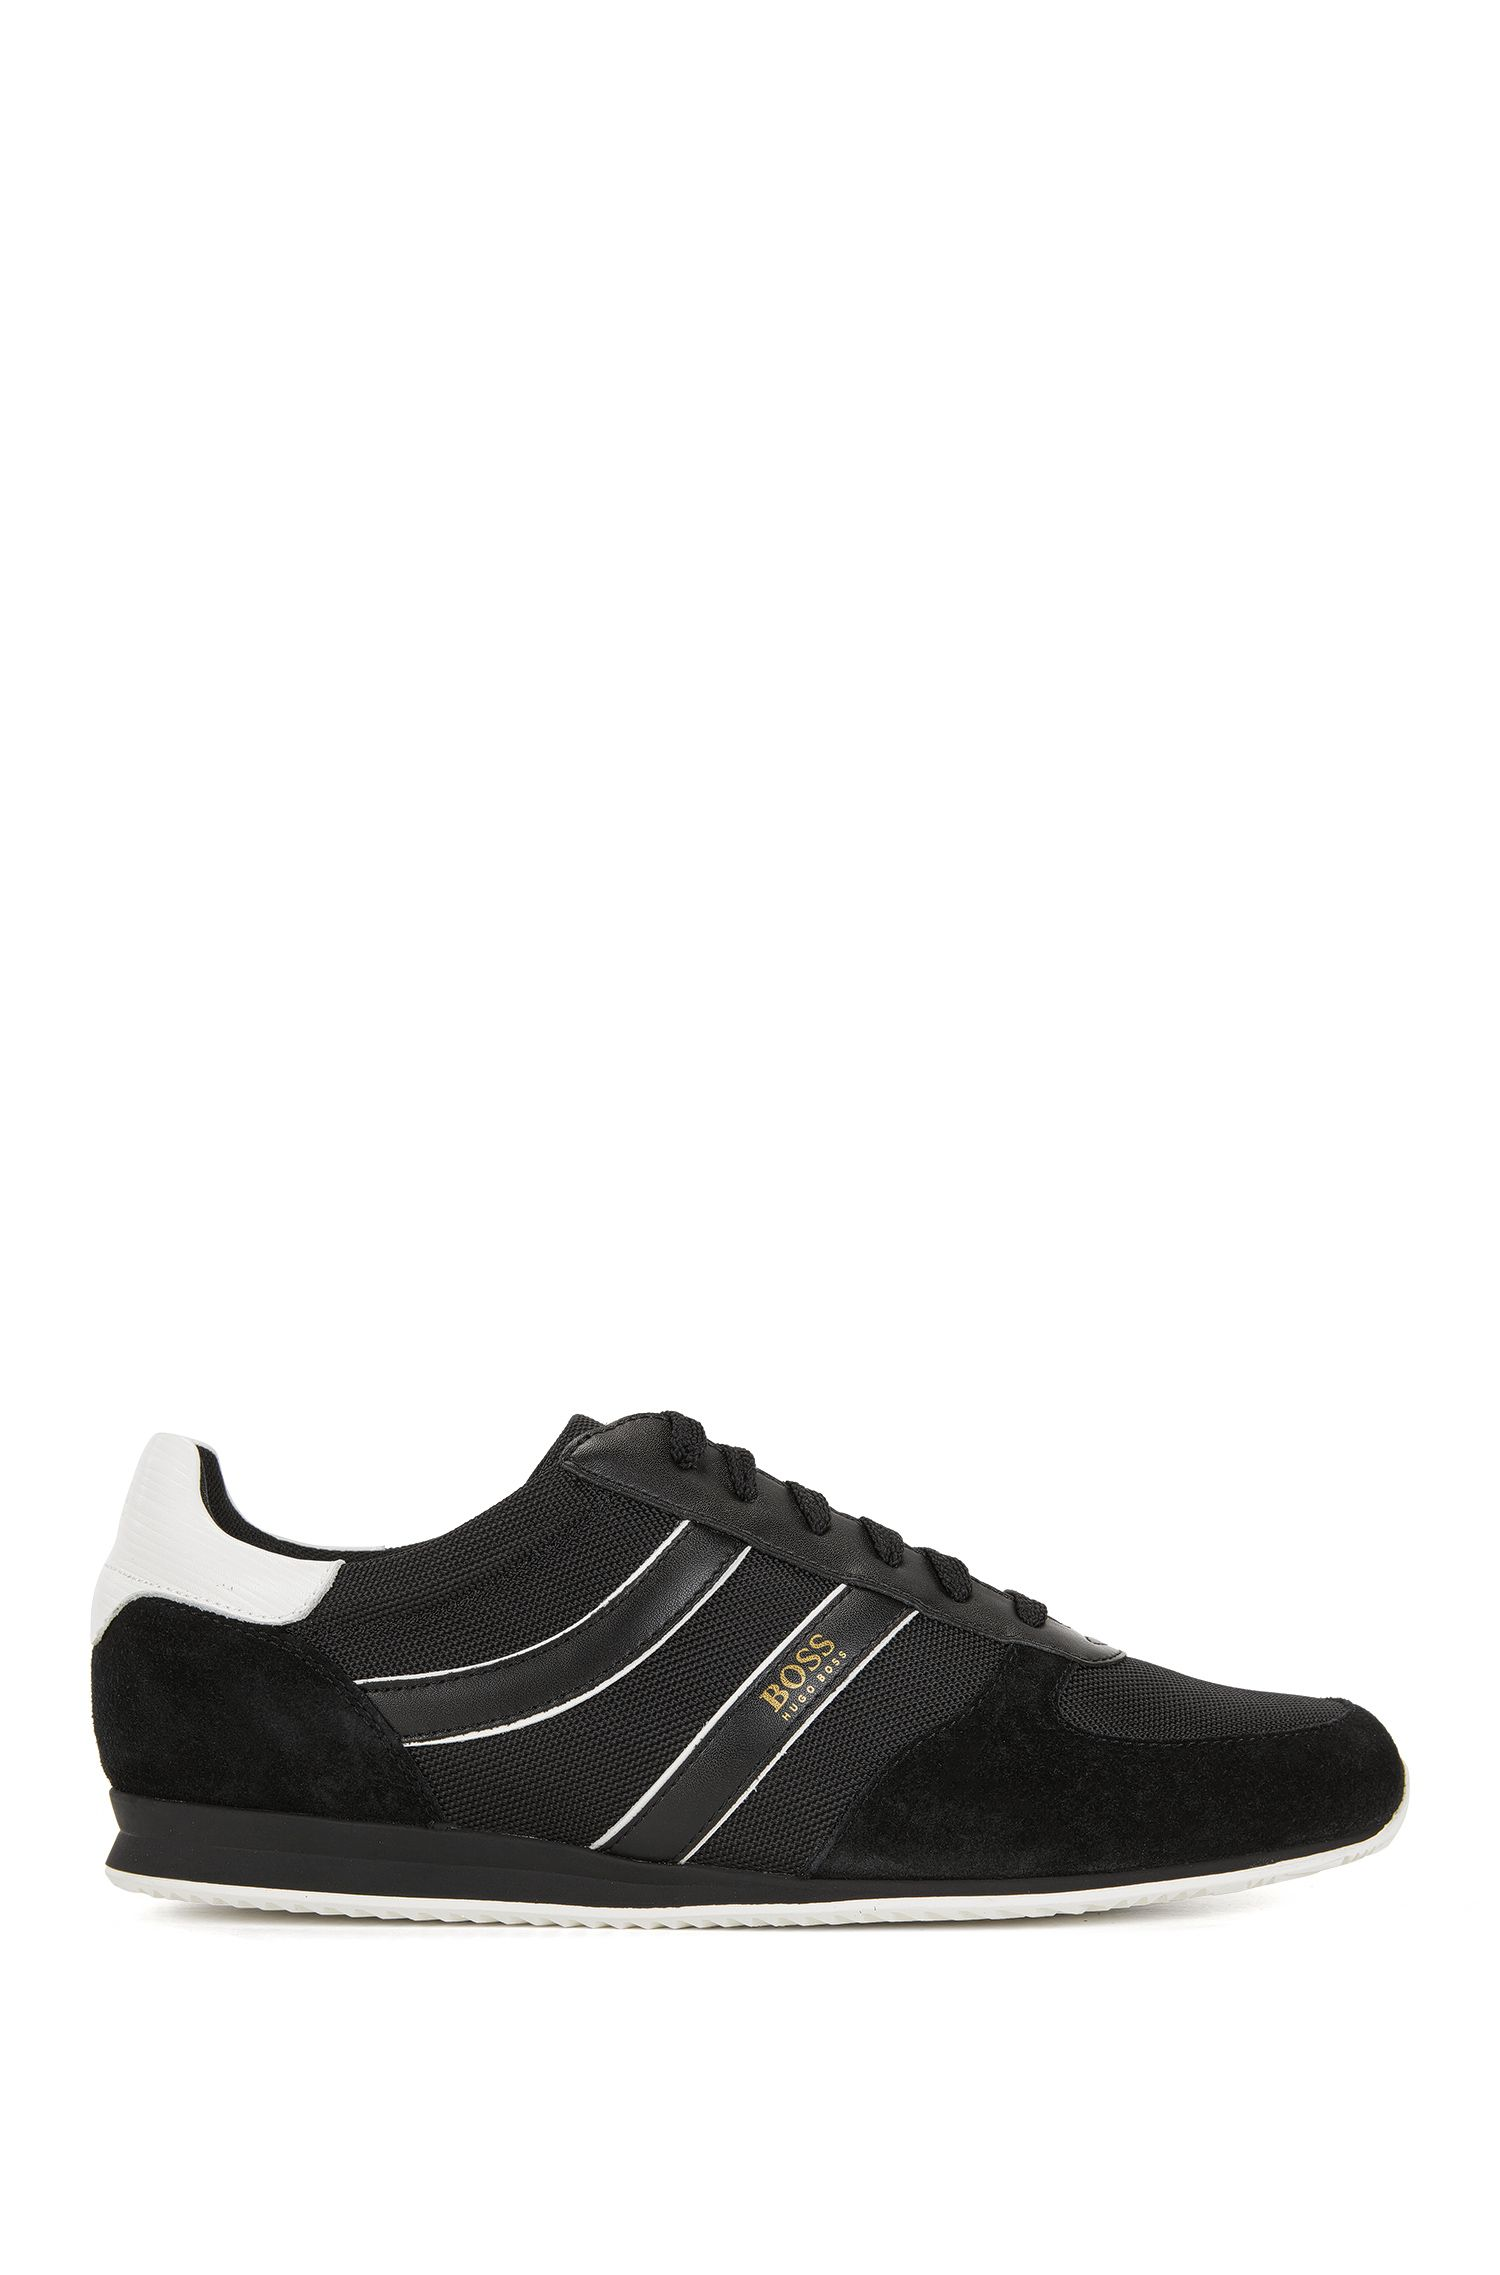 Sneakers low-top con rivestimenti in pelle scamosciata